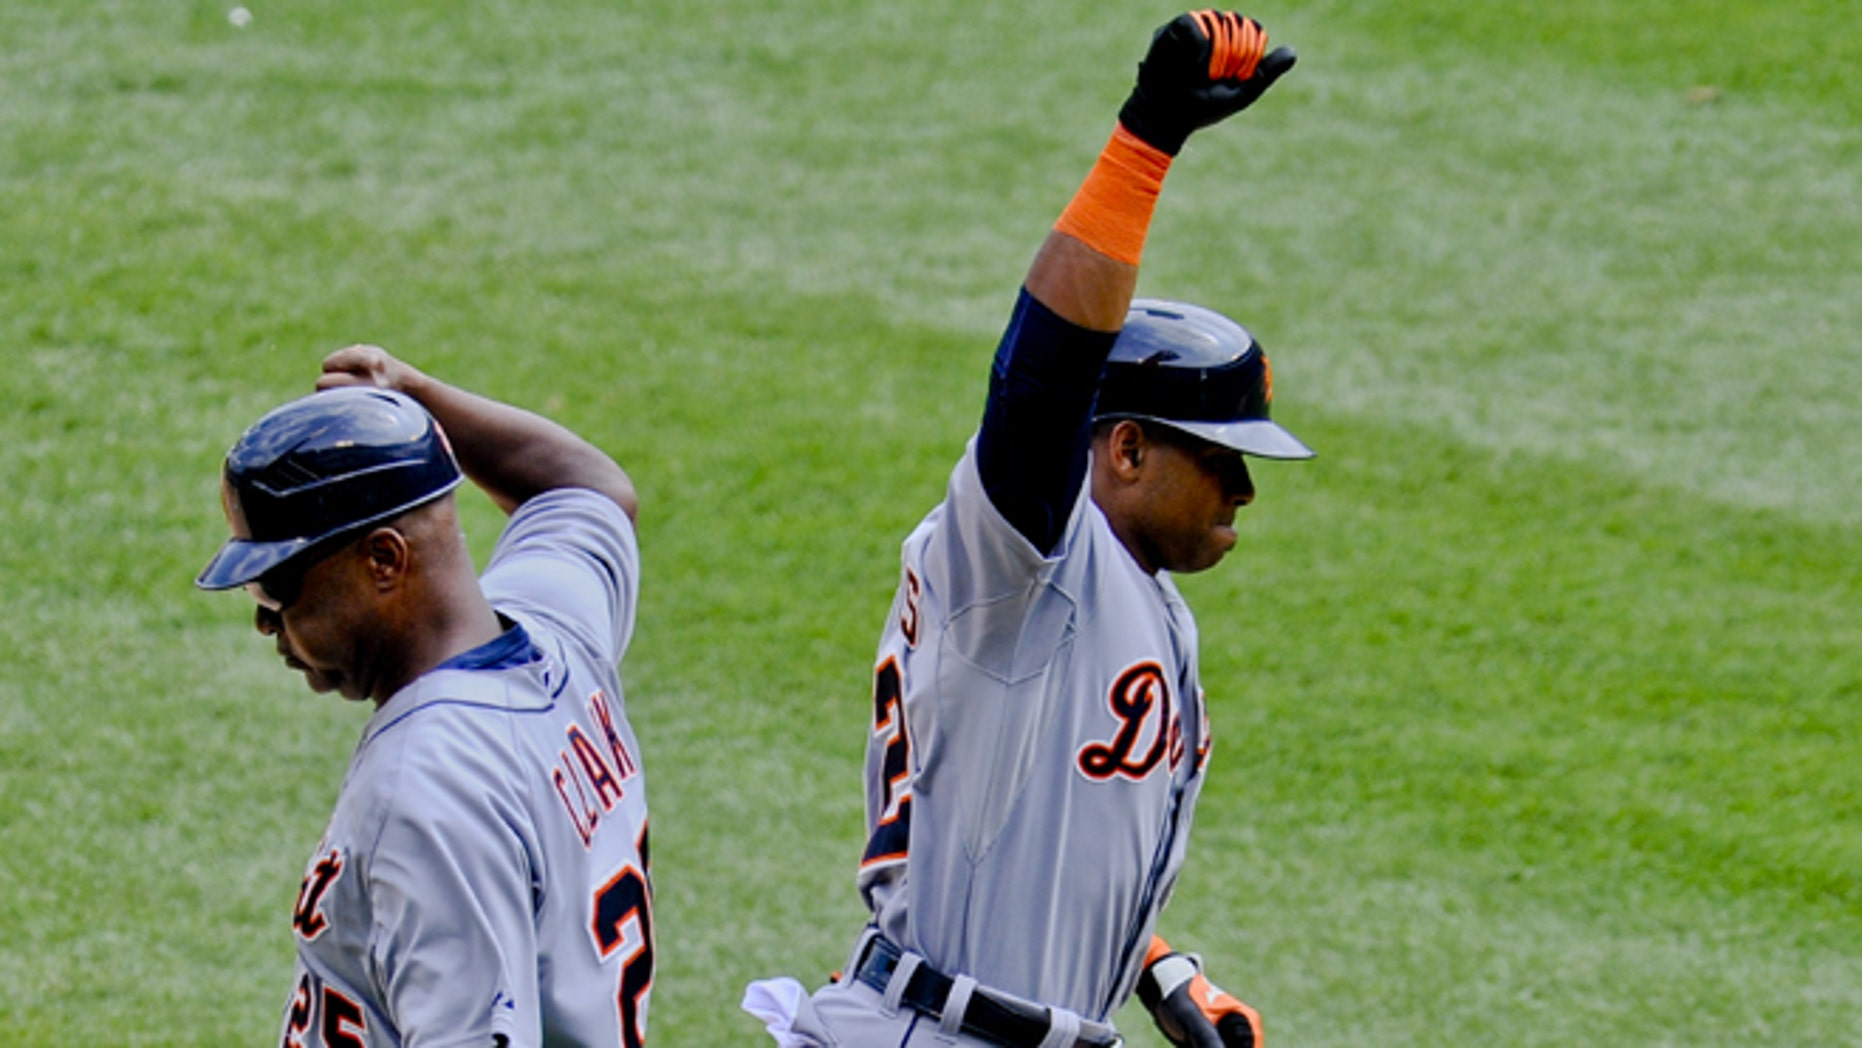 Detroit Tigers Yoenis Cespedes high-fives with coach Dave Clark in Chicago on Sunday, June 7,  2015.